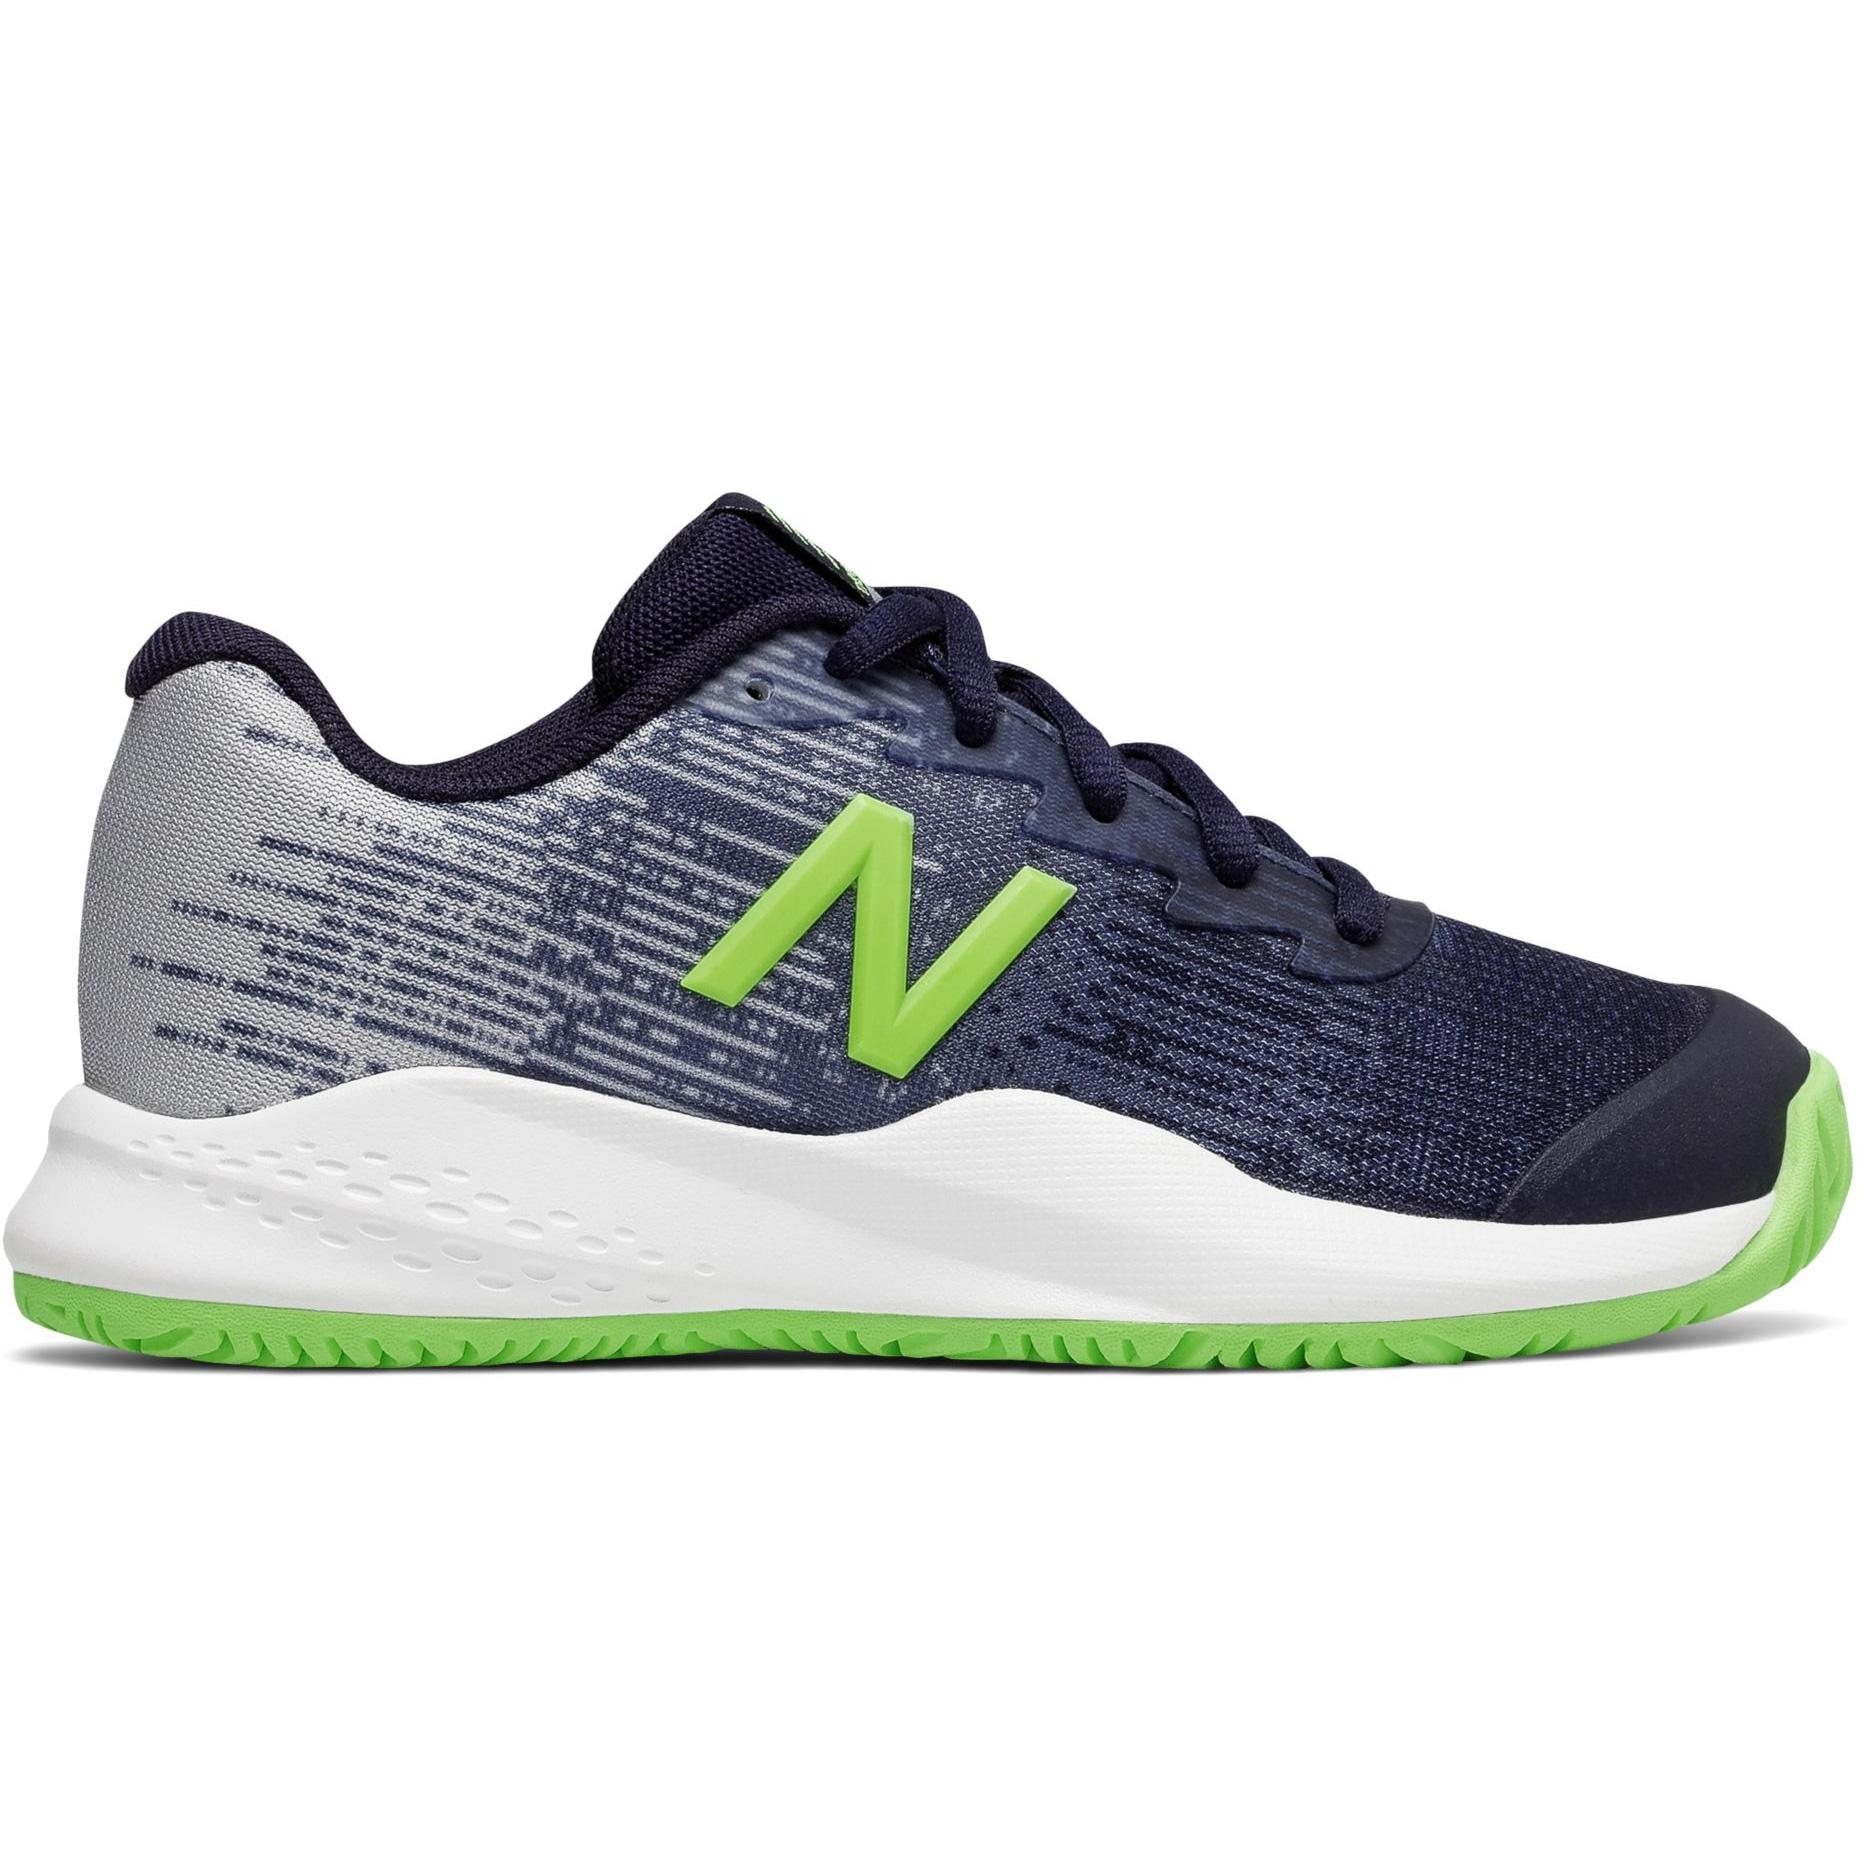 If your son or daughter is need of a high-quality pair of junior tennis shoes, you've come to the right place. Midwest Sports offers the newest kids tennis shoe styles from the best names in the sport. Whether they're just stepping on to the court or they're a budding pro, be sure to outfit your young star with the proper footwear.